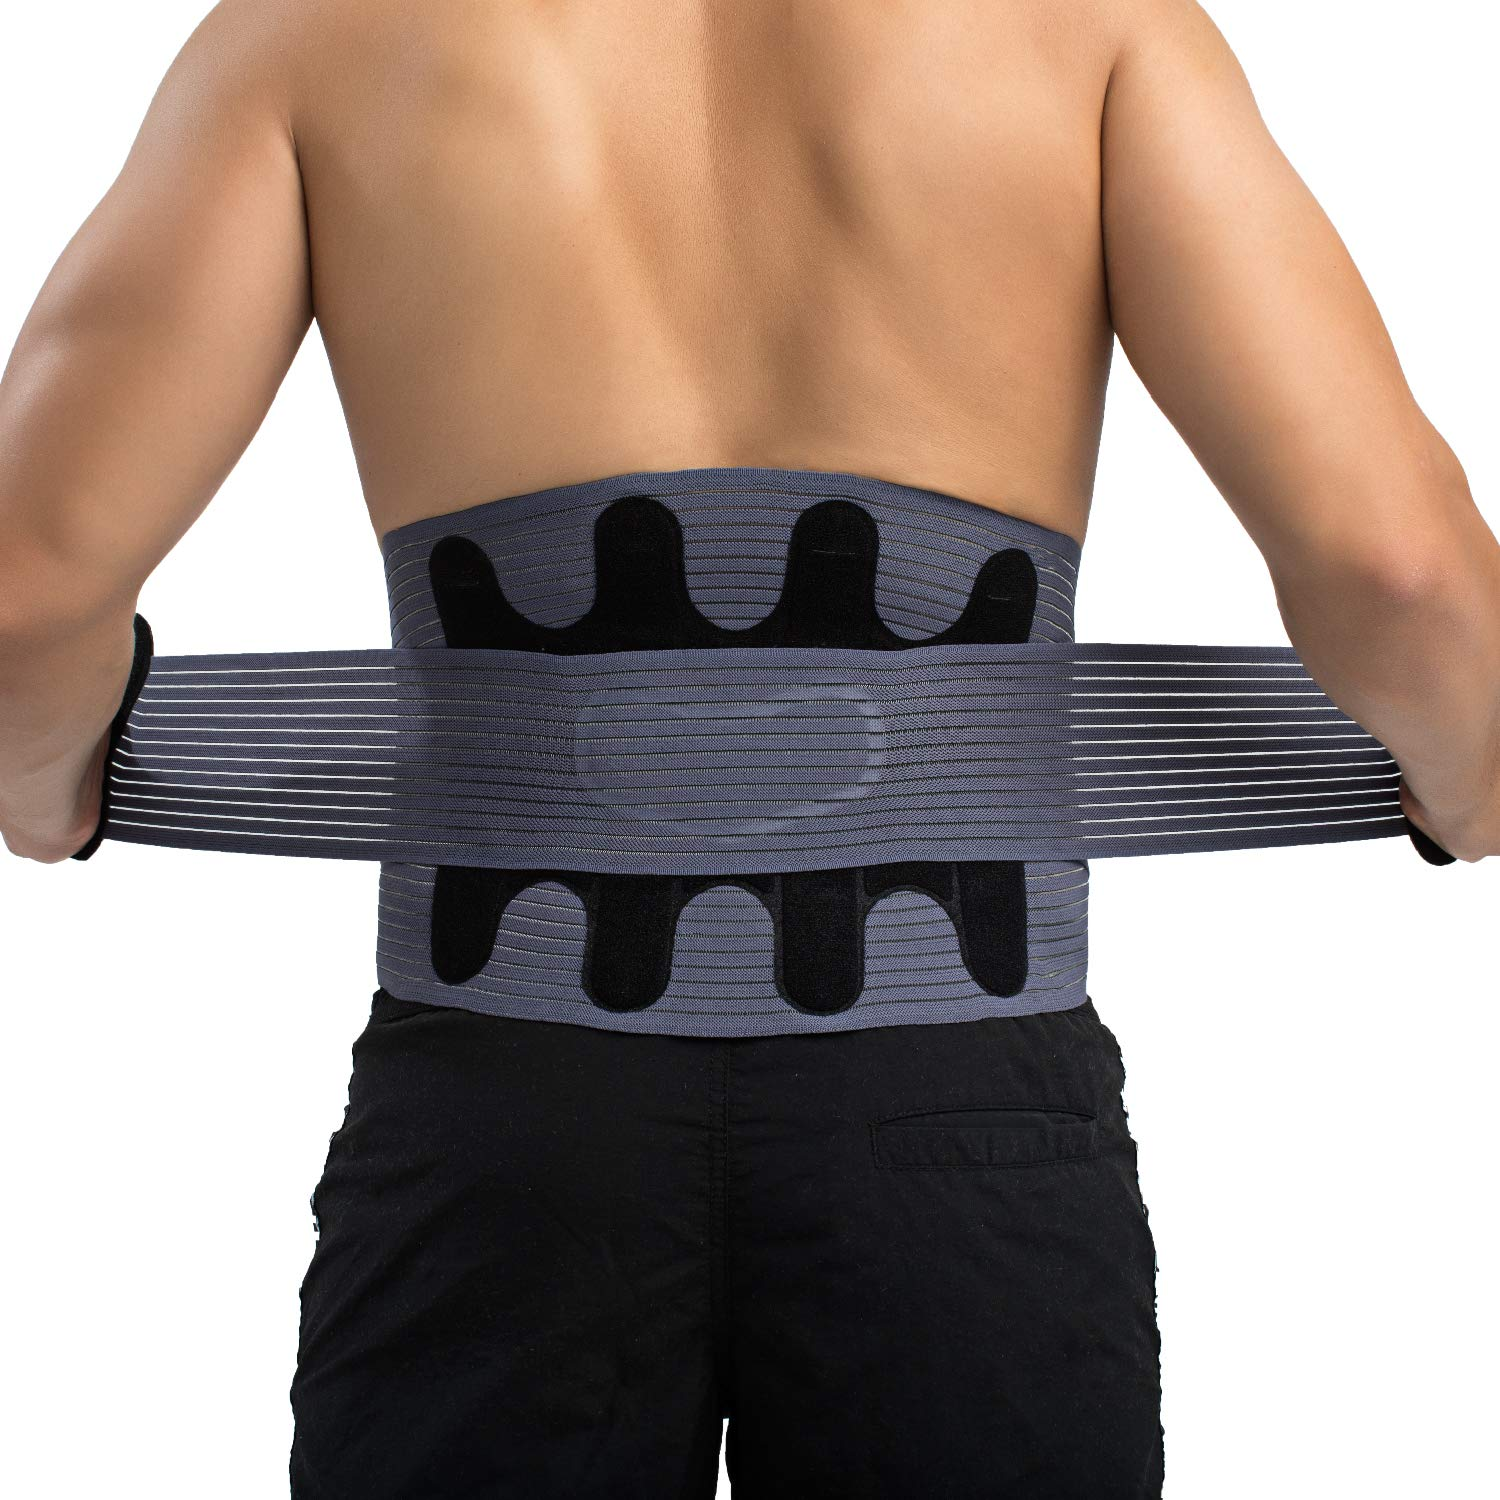 Athlete Elite Back Support Brace and Posture Corrector (Neoprene) Relieve Sciatica, Lower Lumbar, Joint, Herniated Disc Pain | Adjustable, Breathable Heat Compression | Men, Women [ M - 35'']